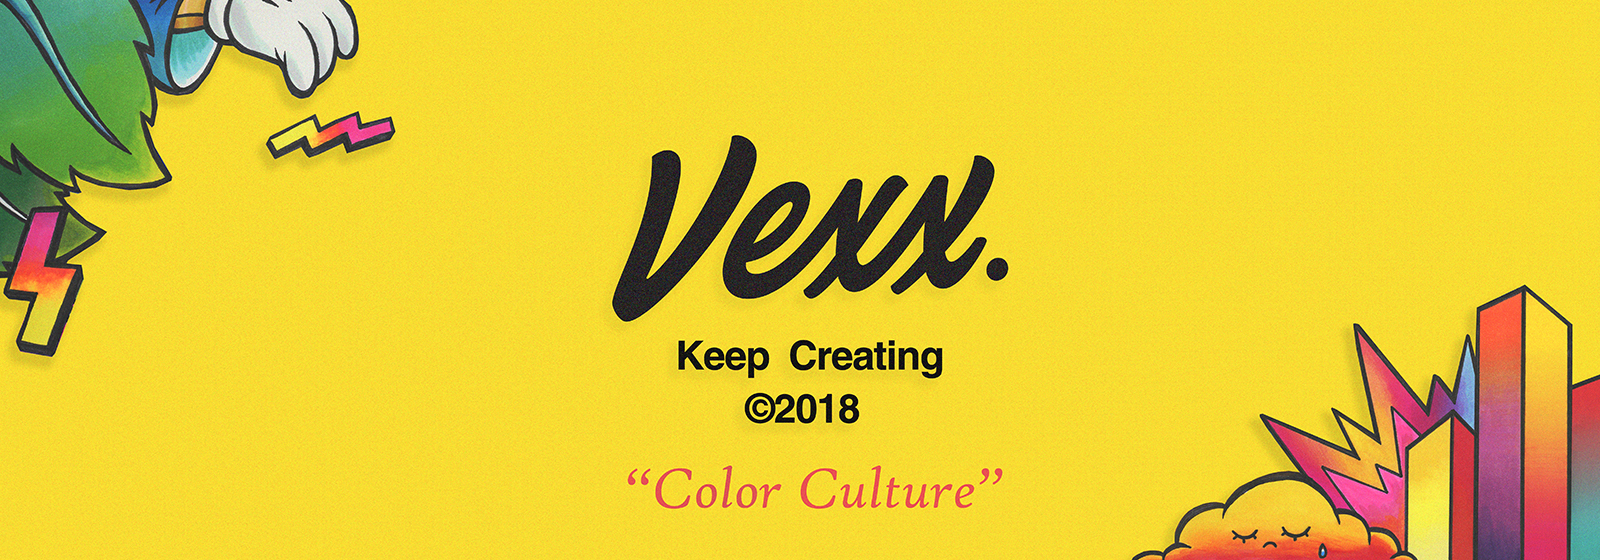 Vexx | Keep Creating Store